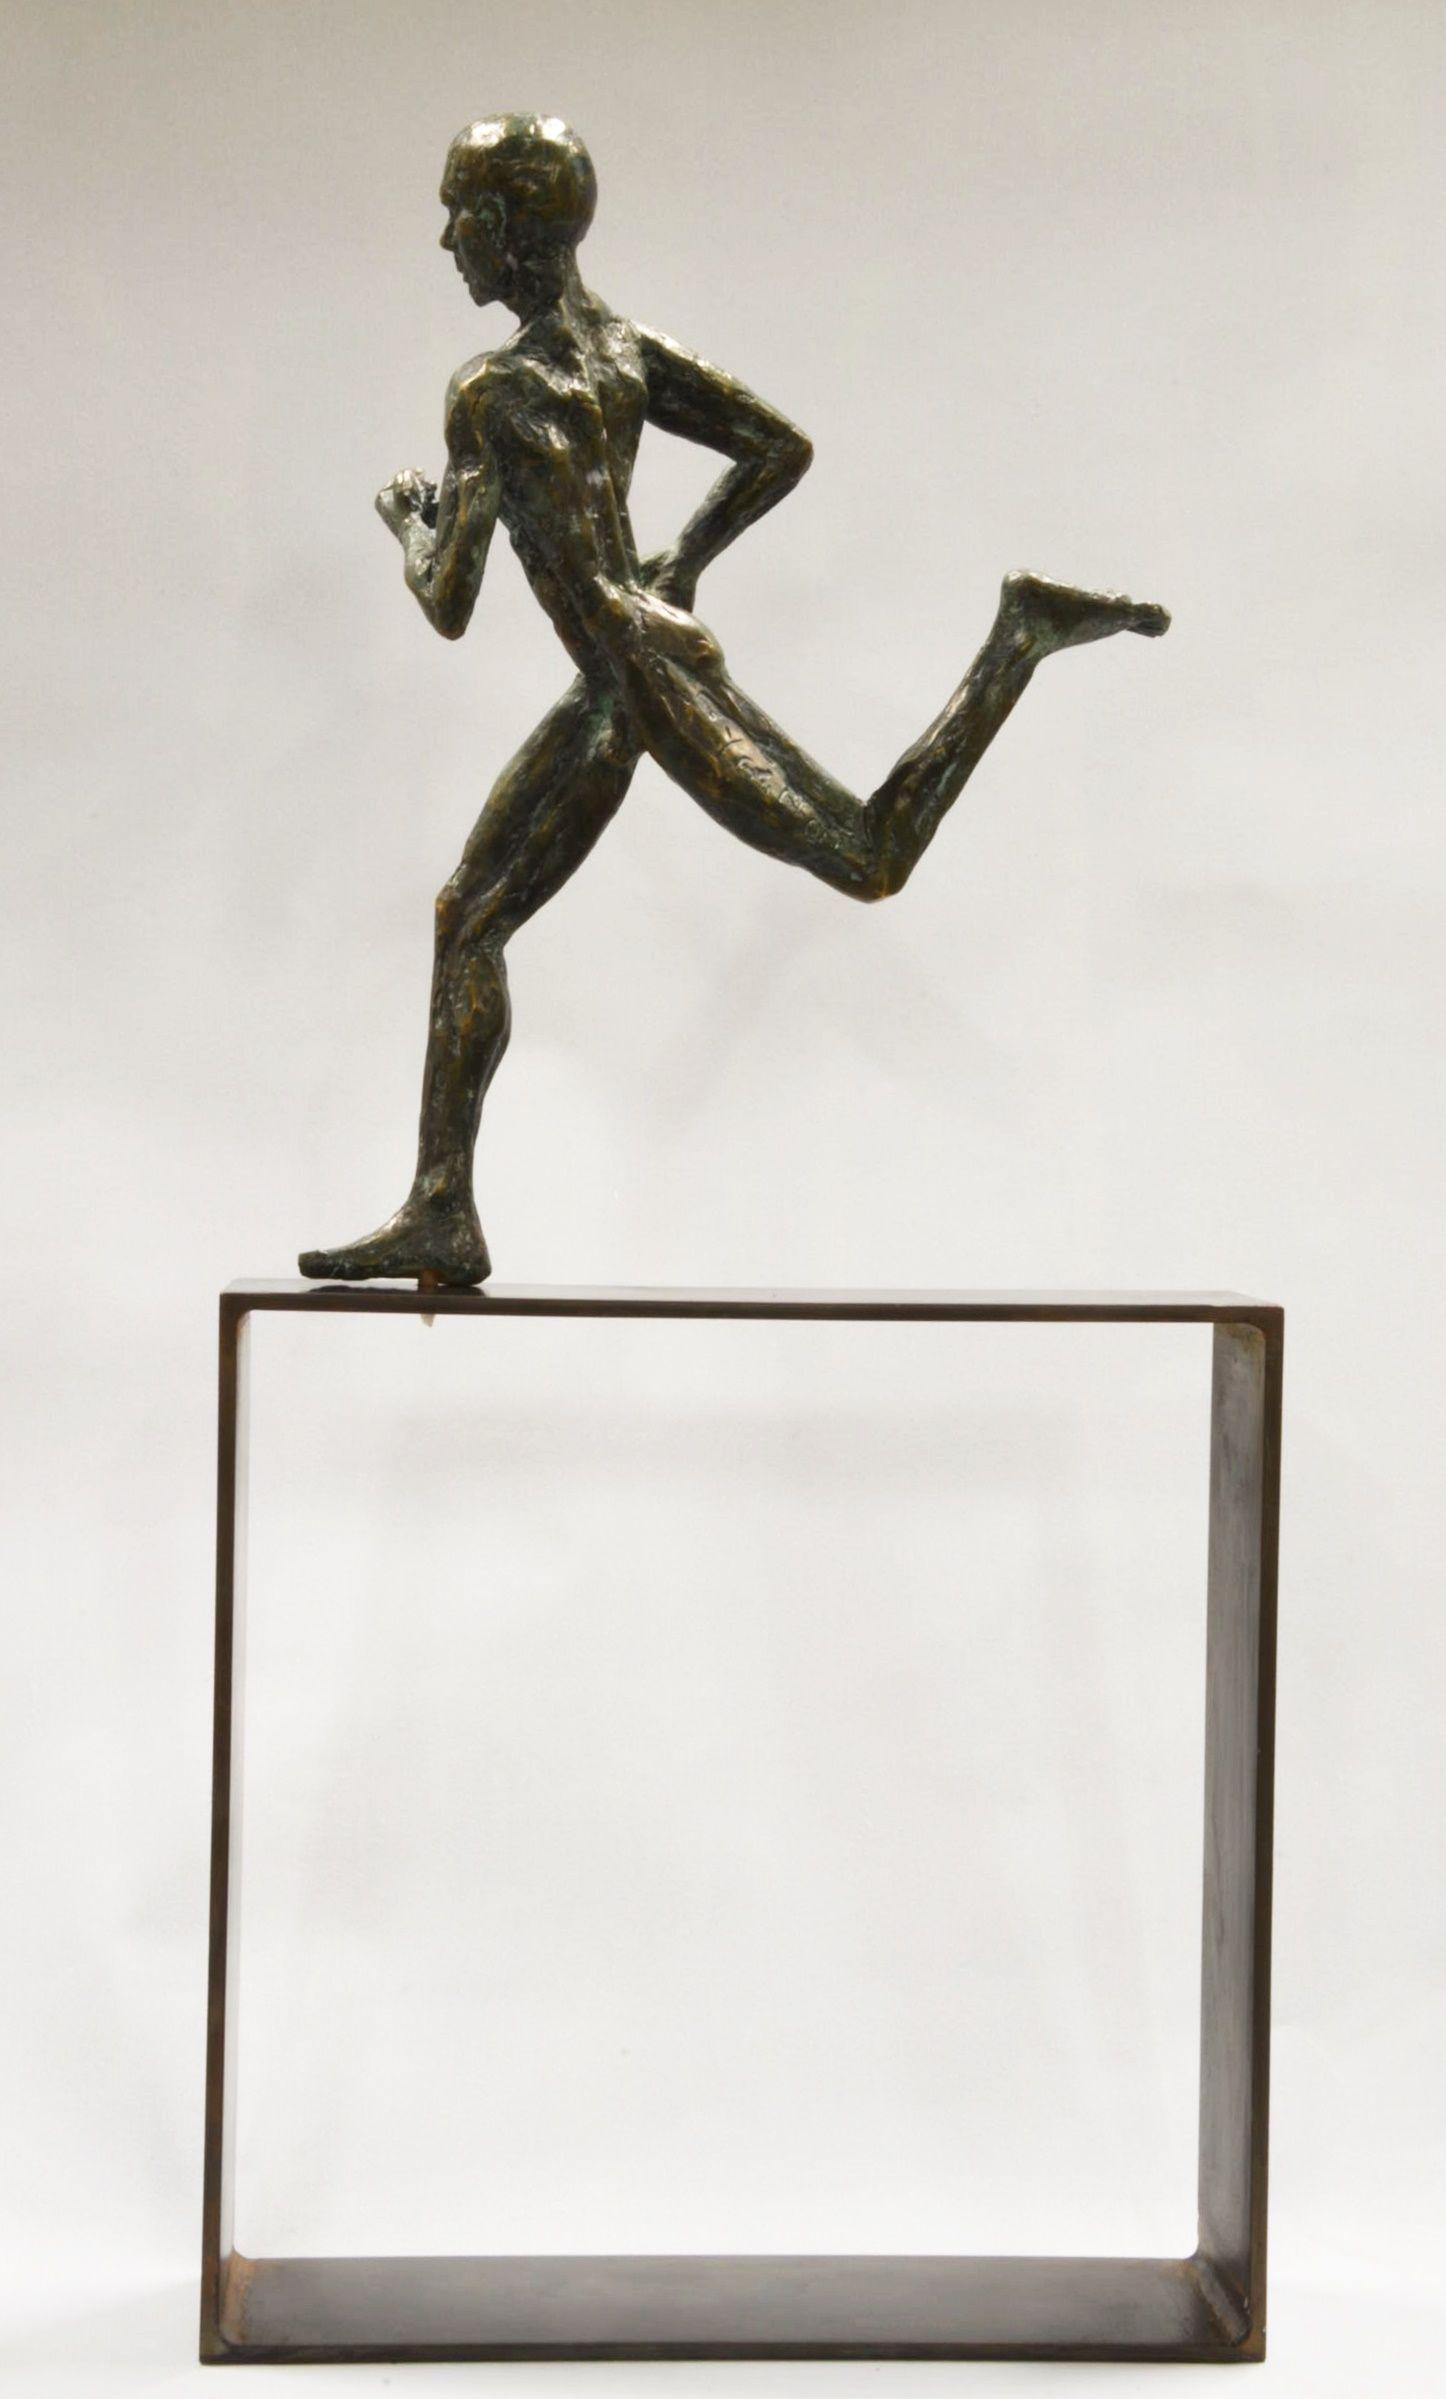 Runner Marathon,Yann Guillon,Sculpture, detail 1